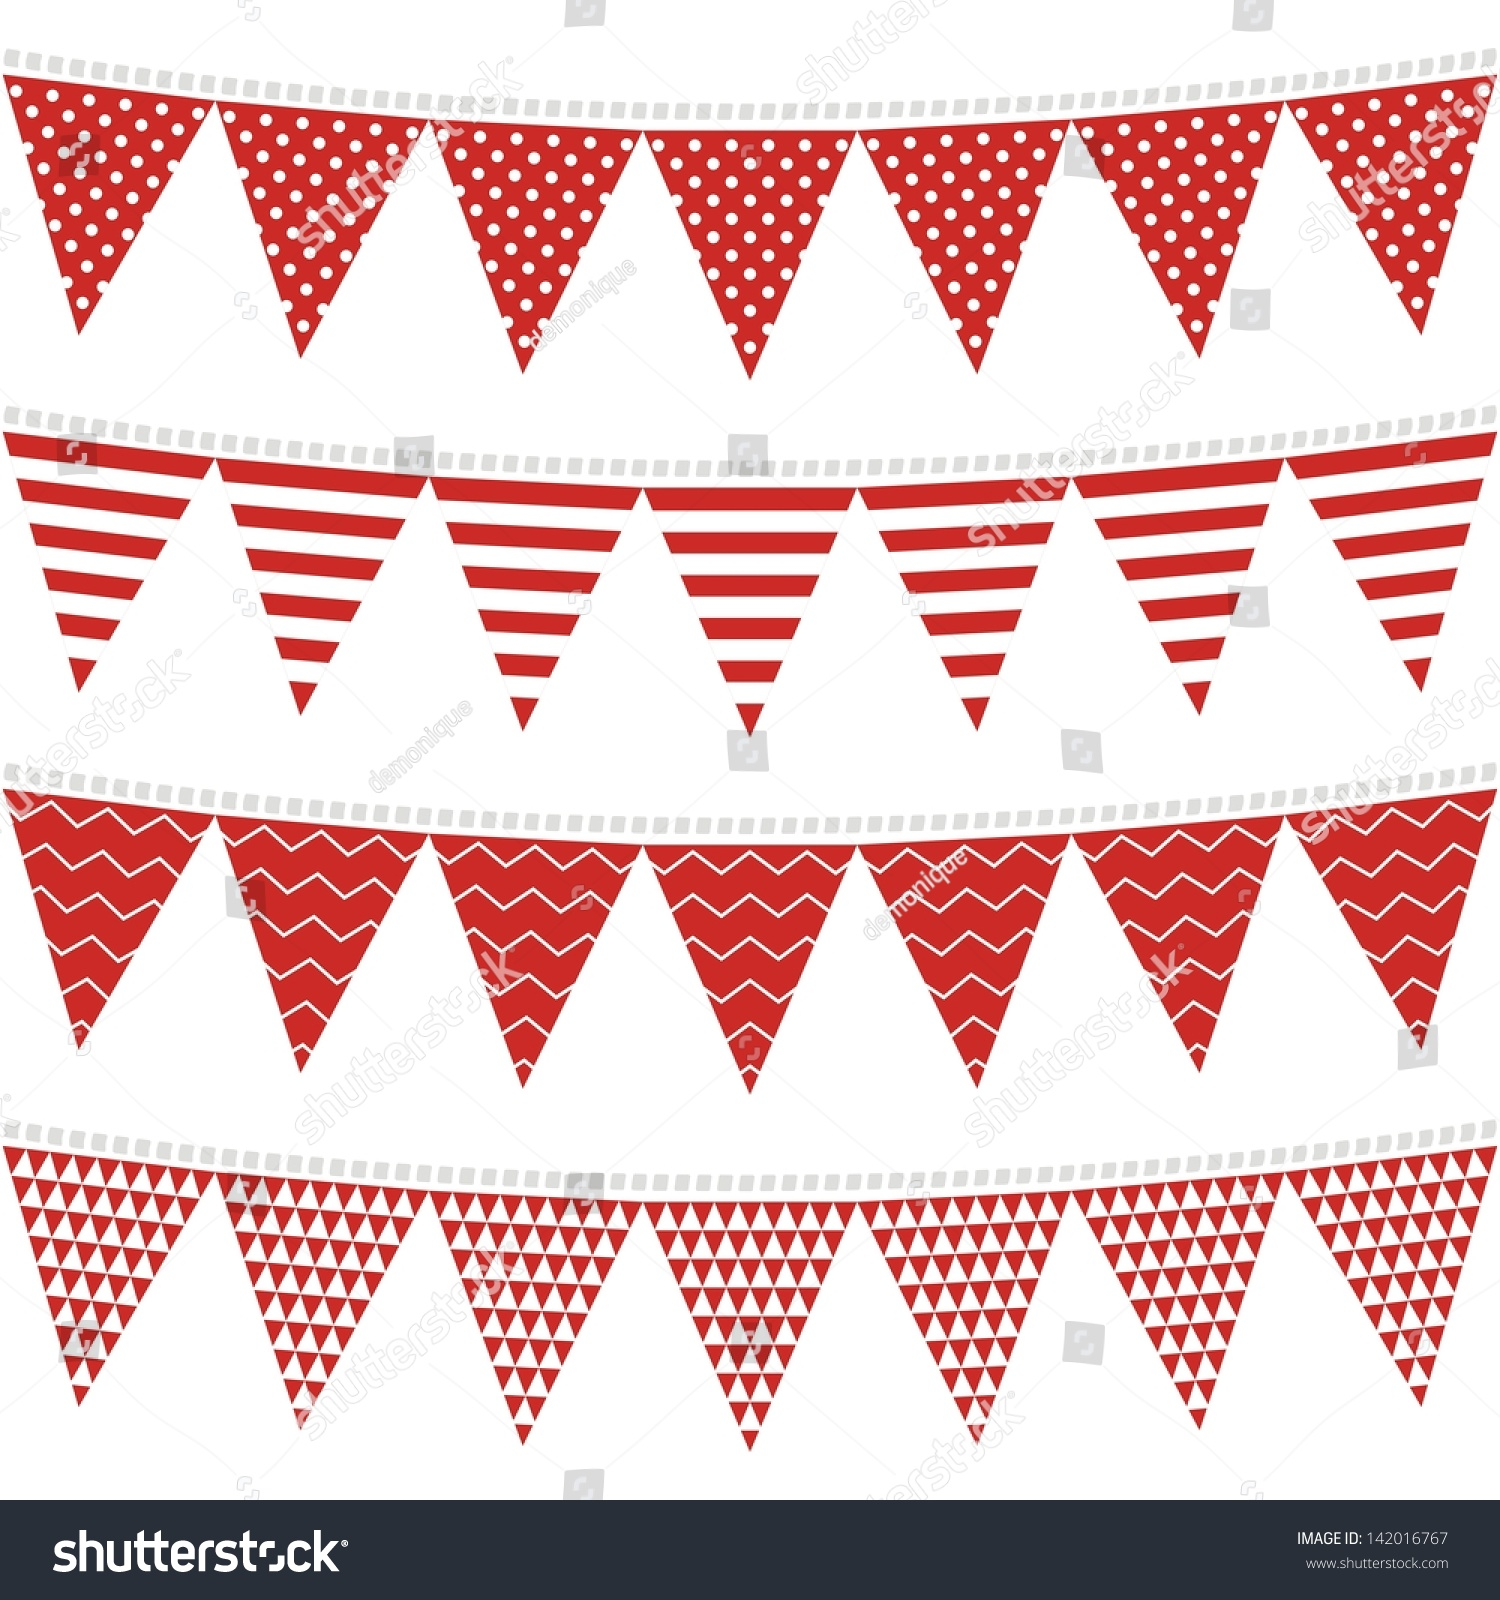 Vector bunting flags lovely celebration card with colorful paper - Dots Stripes Chevron Triangles Patterned Flags On Gray Rope Red Holiday Celebration Decoration Bunting Set Colorful